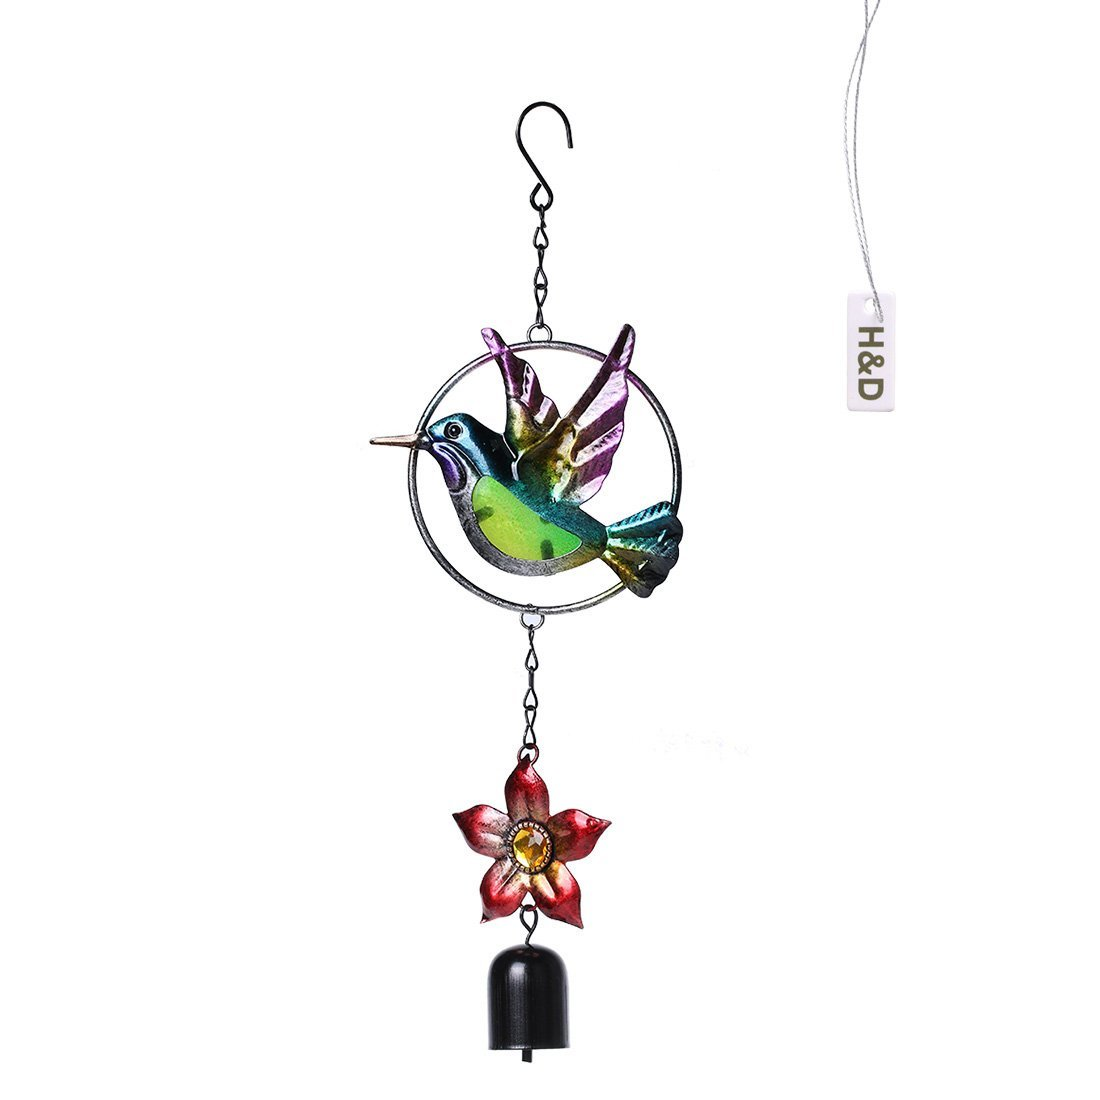 H&D Top AAA Bird Metal and Glass Wind Chimes Handcrafts Home Garden Decoration (bird & flower)